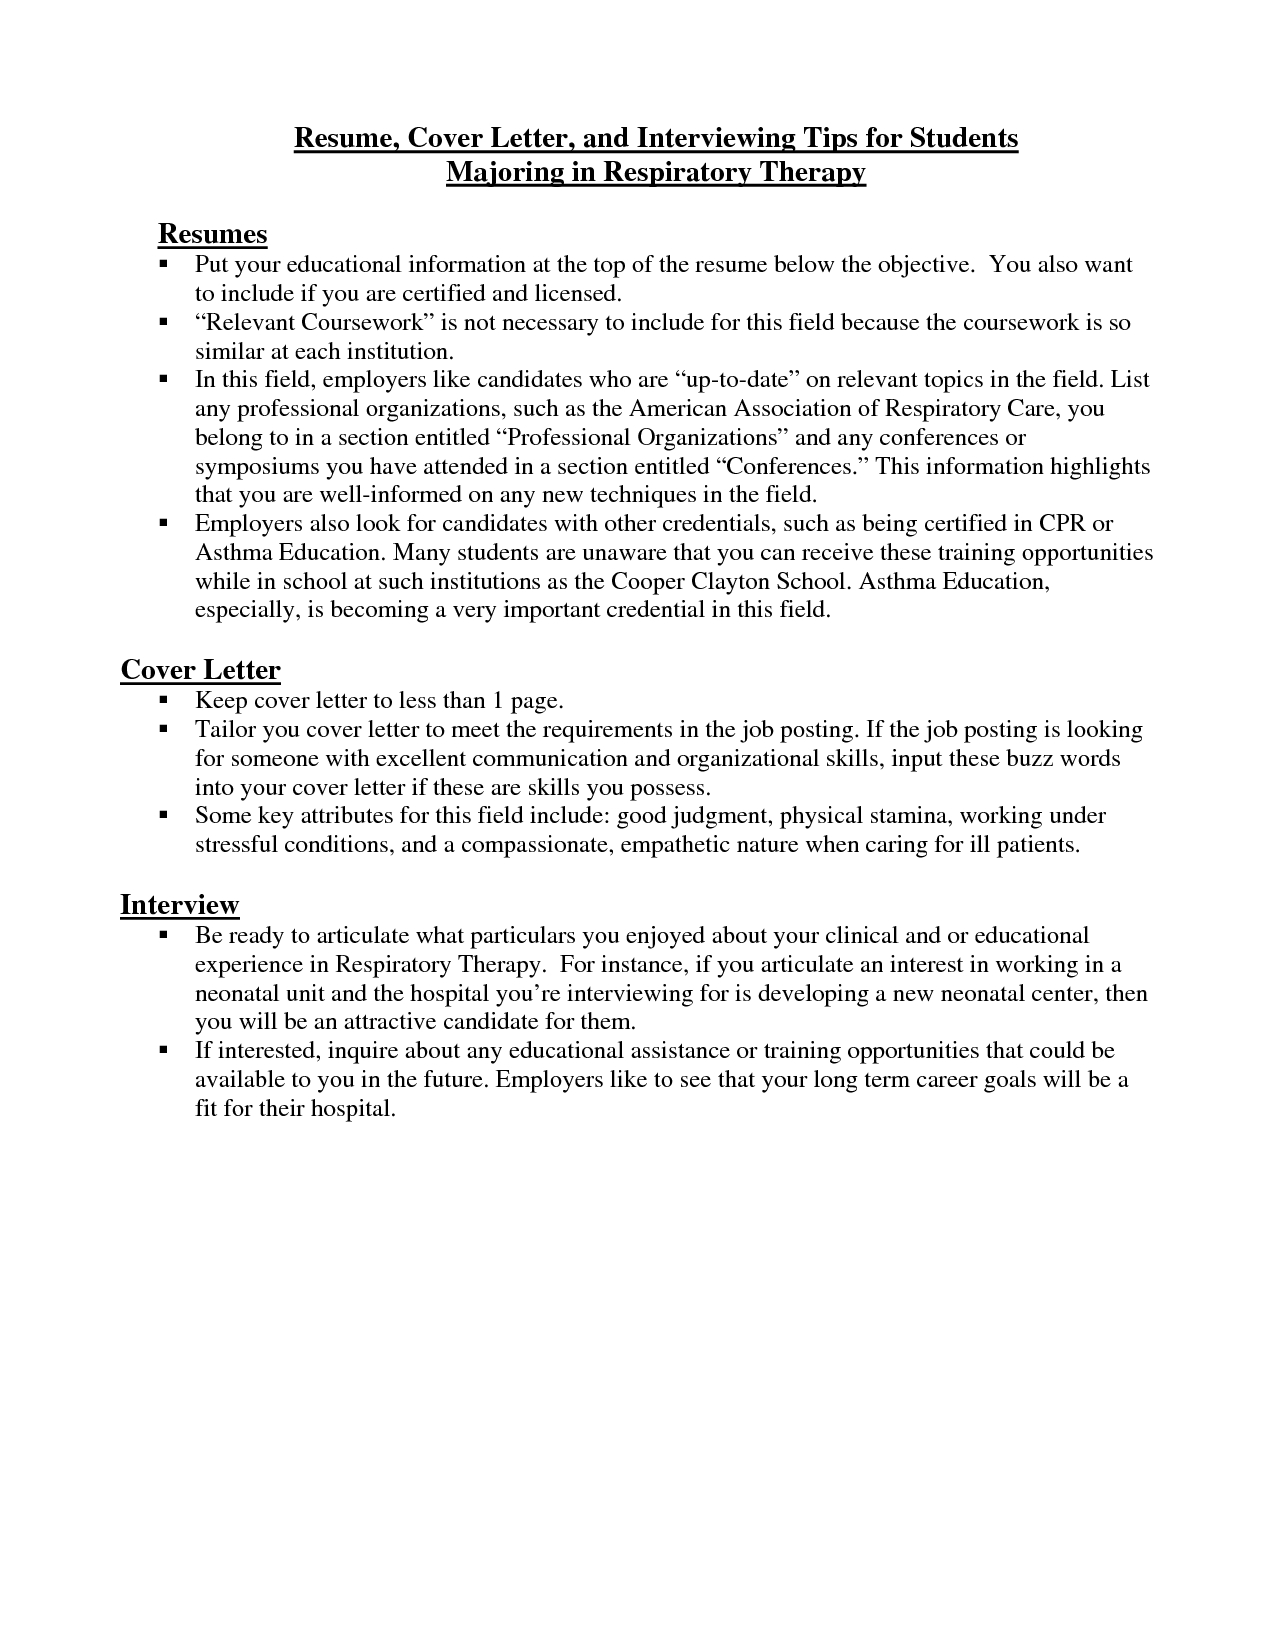 Respiratory therapy Cover Letter Template - Respiratory therapist Cover Letter